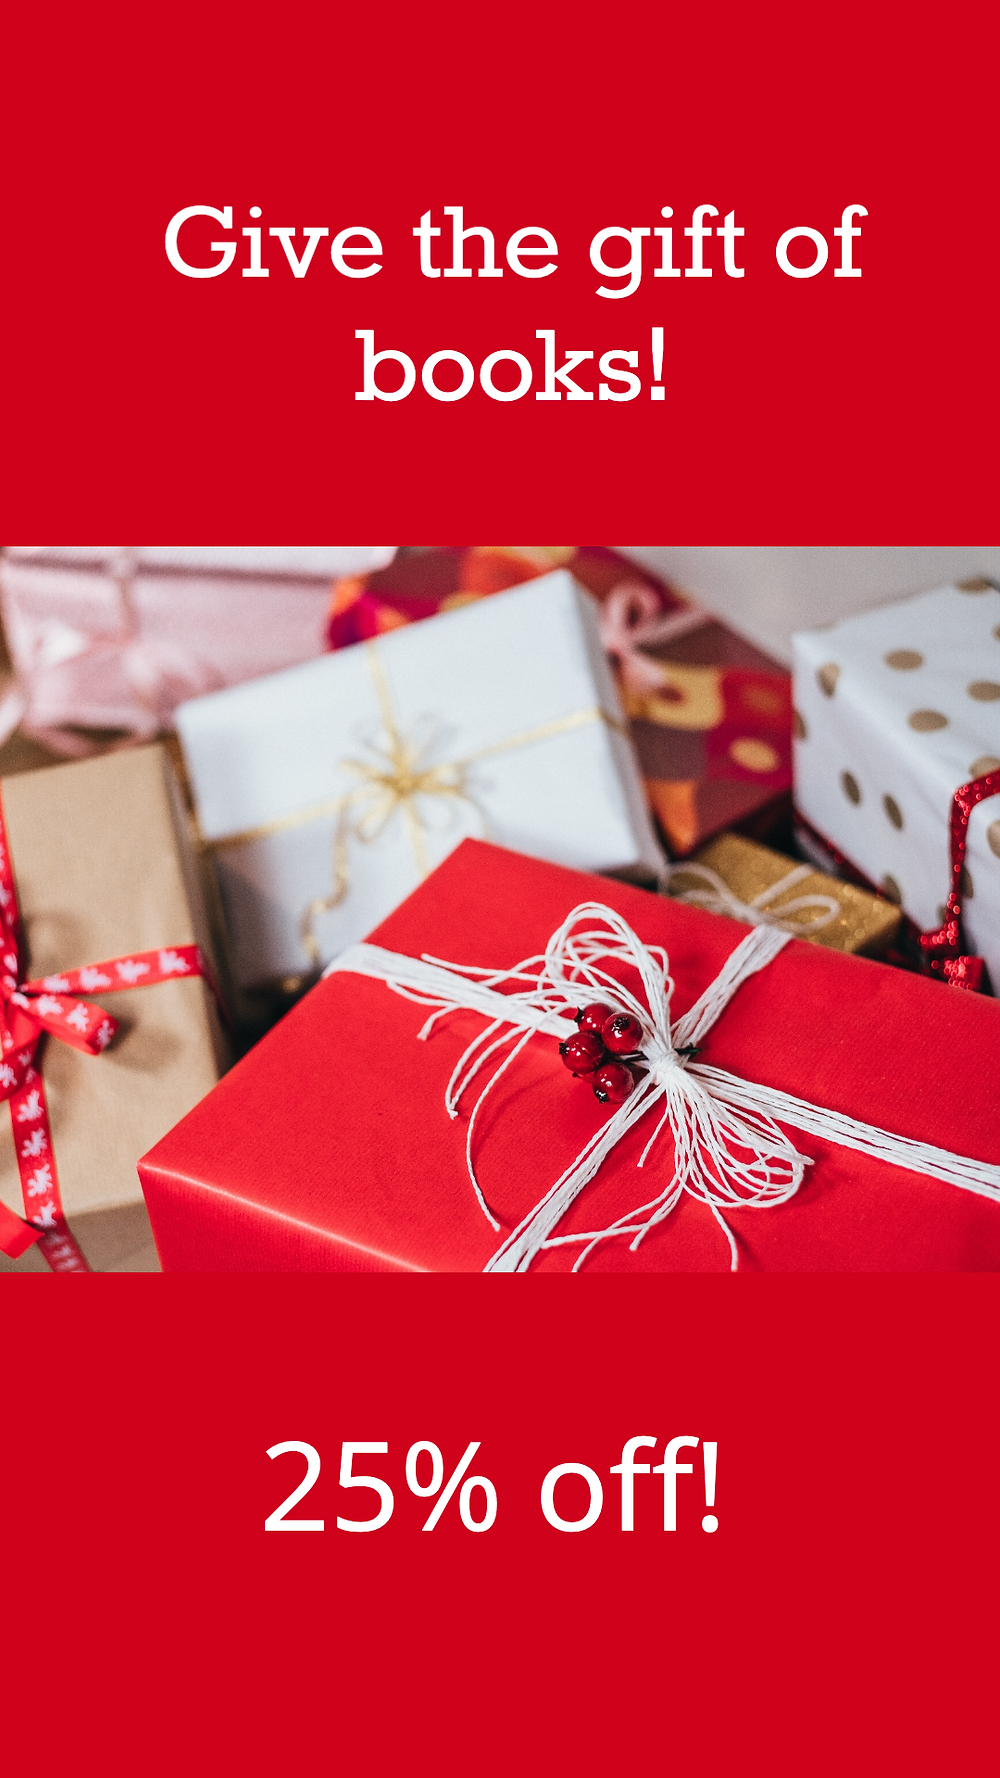 Red holiday social media story template with wrapped Christmas gifts